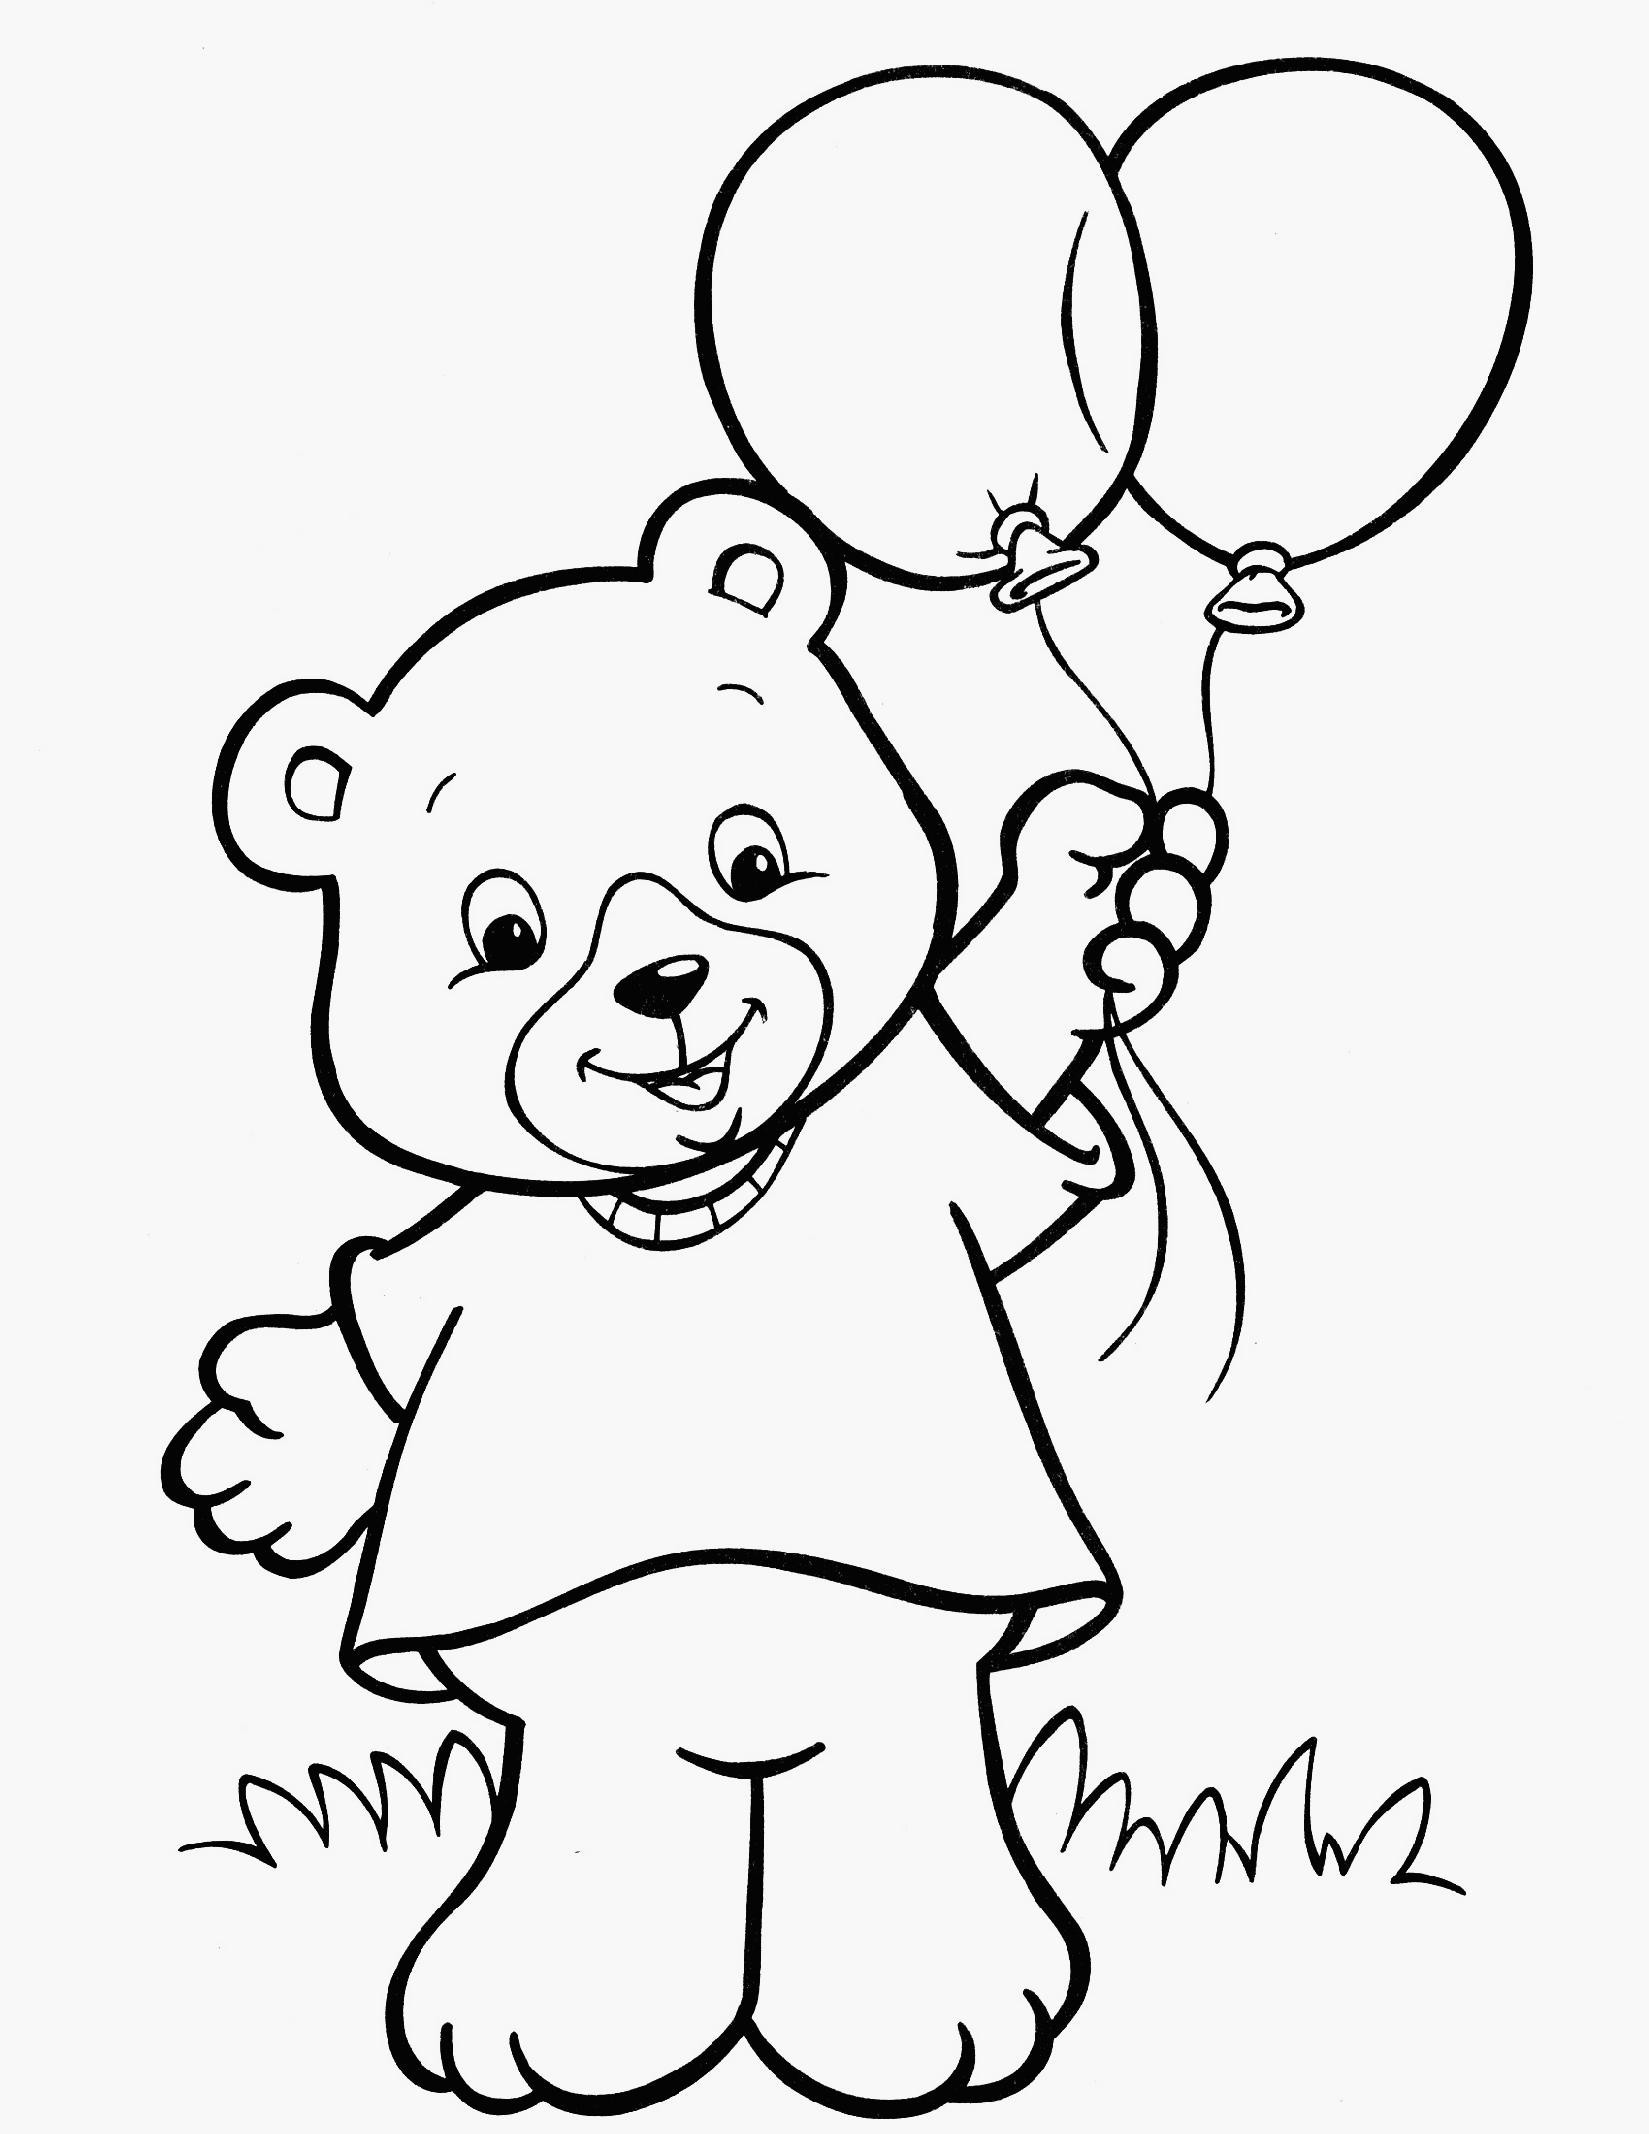 free printable coloring pages for 8 year olds free printable doll coloring pages pink heart string free coloring pages printable year 8 olds for